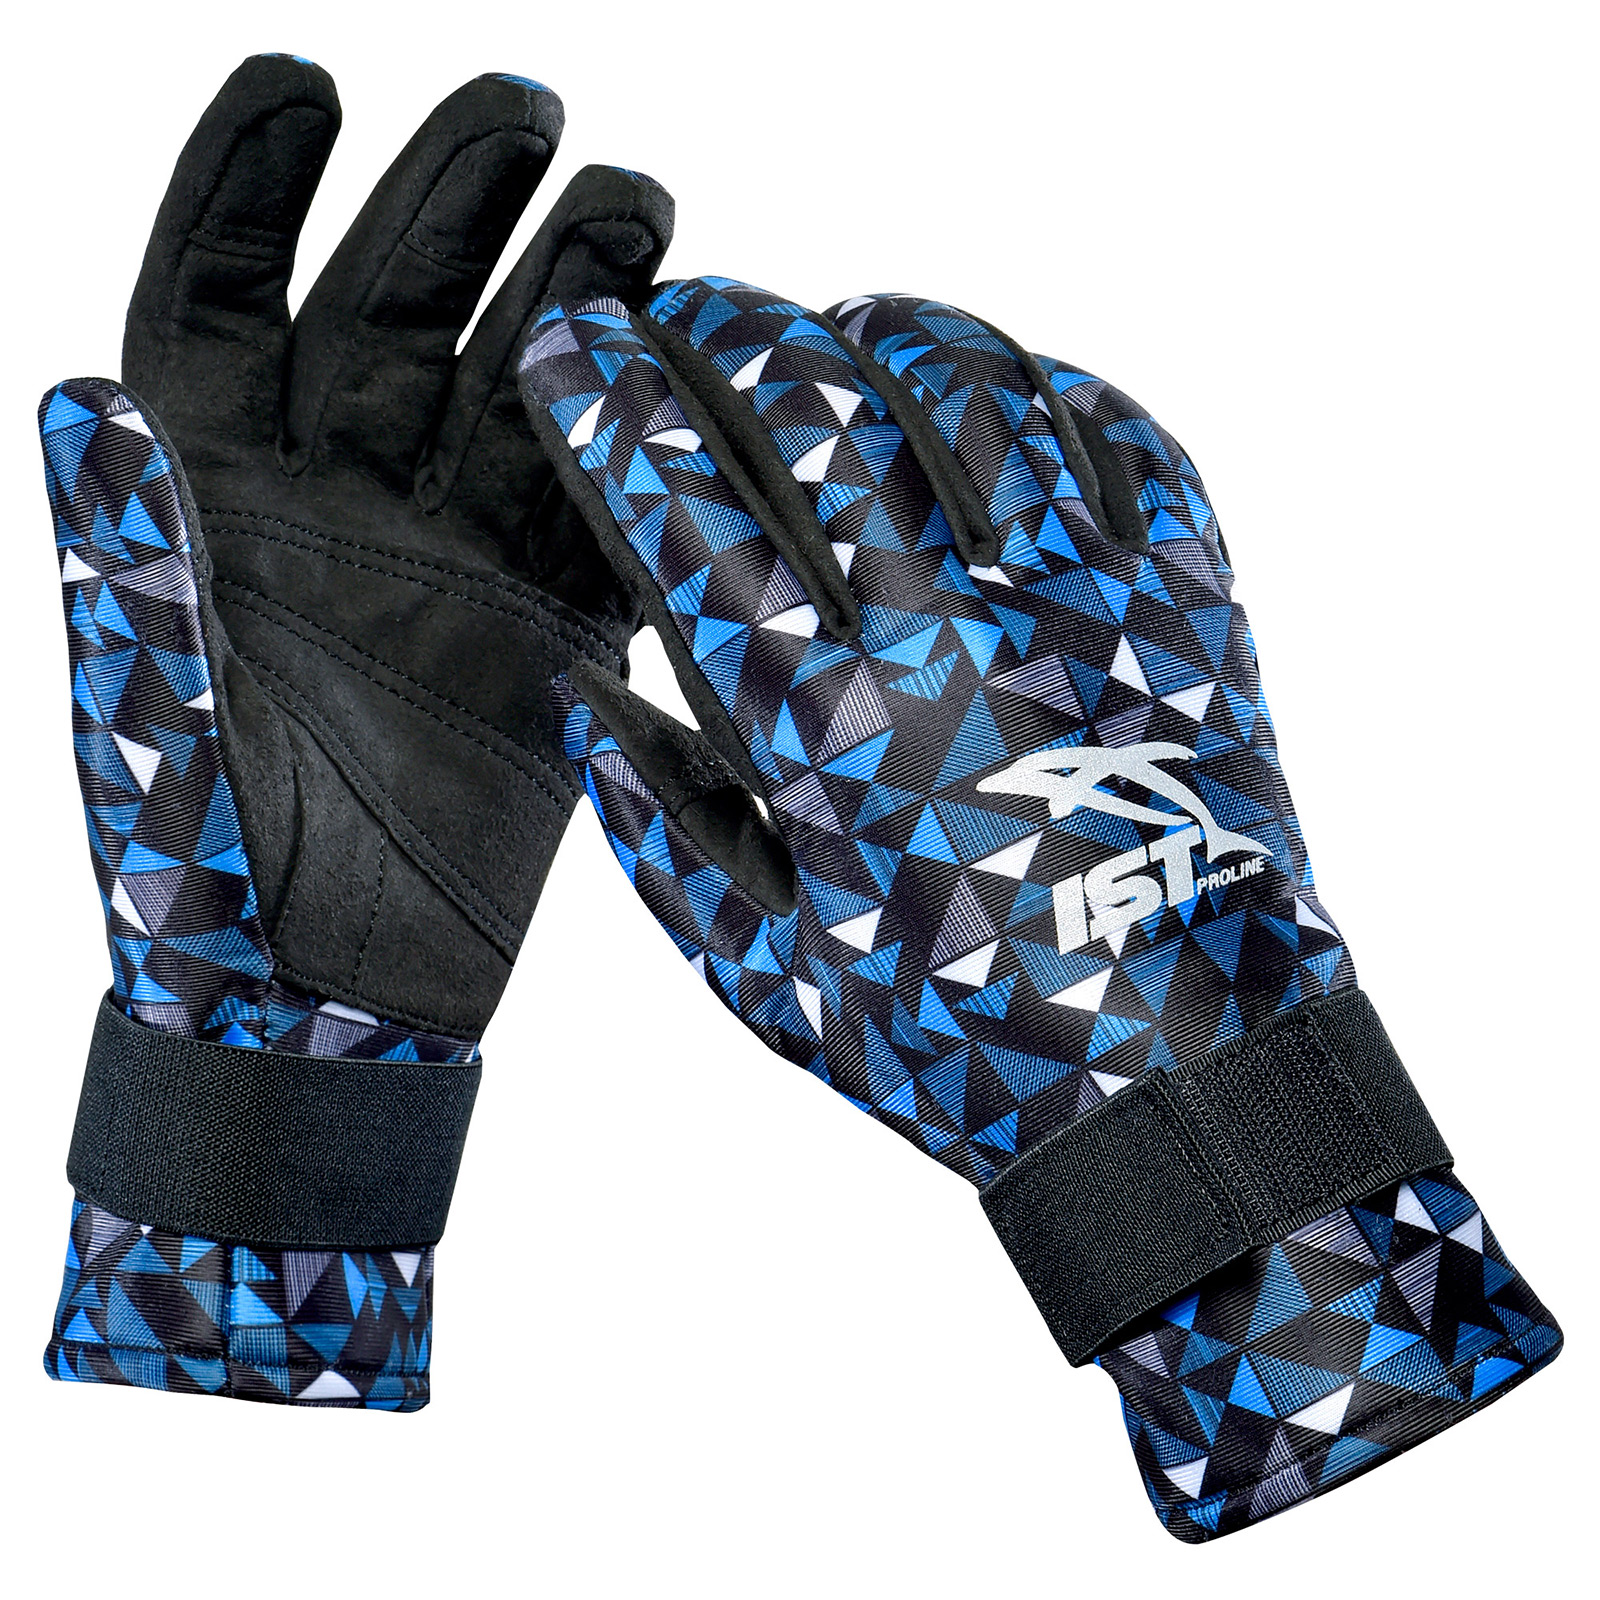 2MM NEOPRENE/AMARA PALM REEF GLOVES